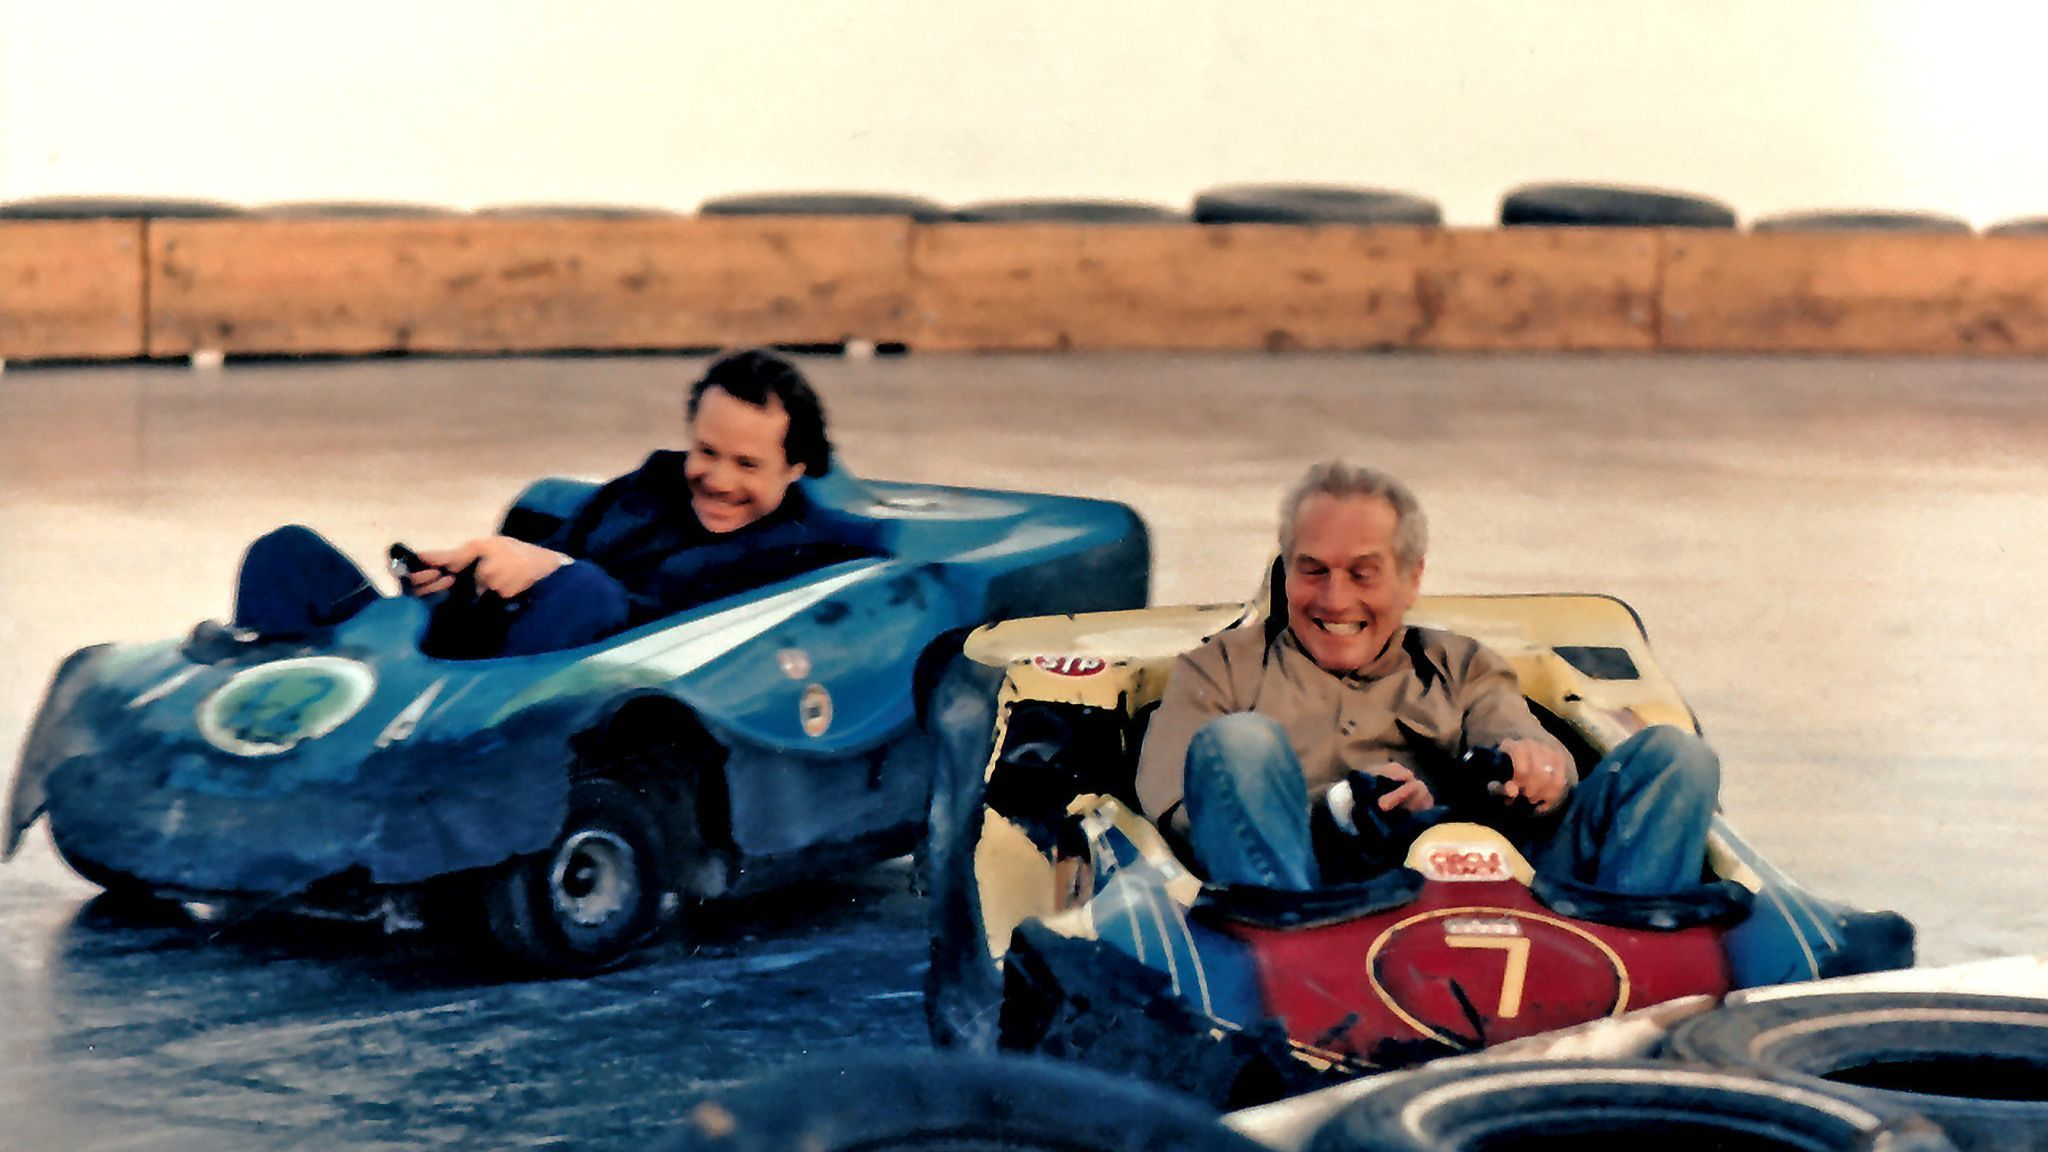 Paul Newman beating me to the finish line at a slick track in Los Angeles.